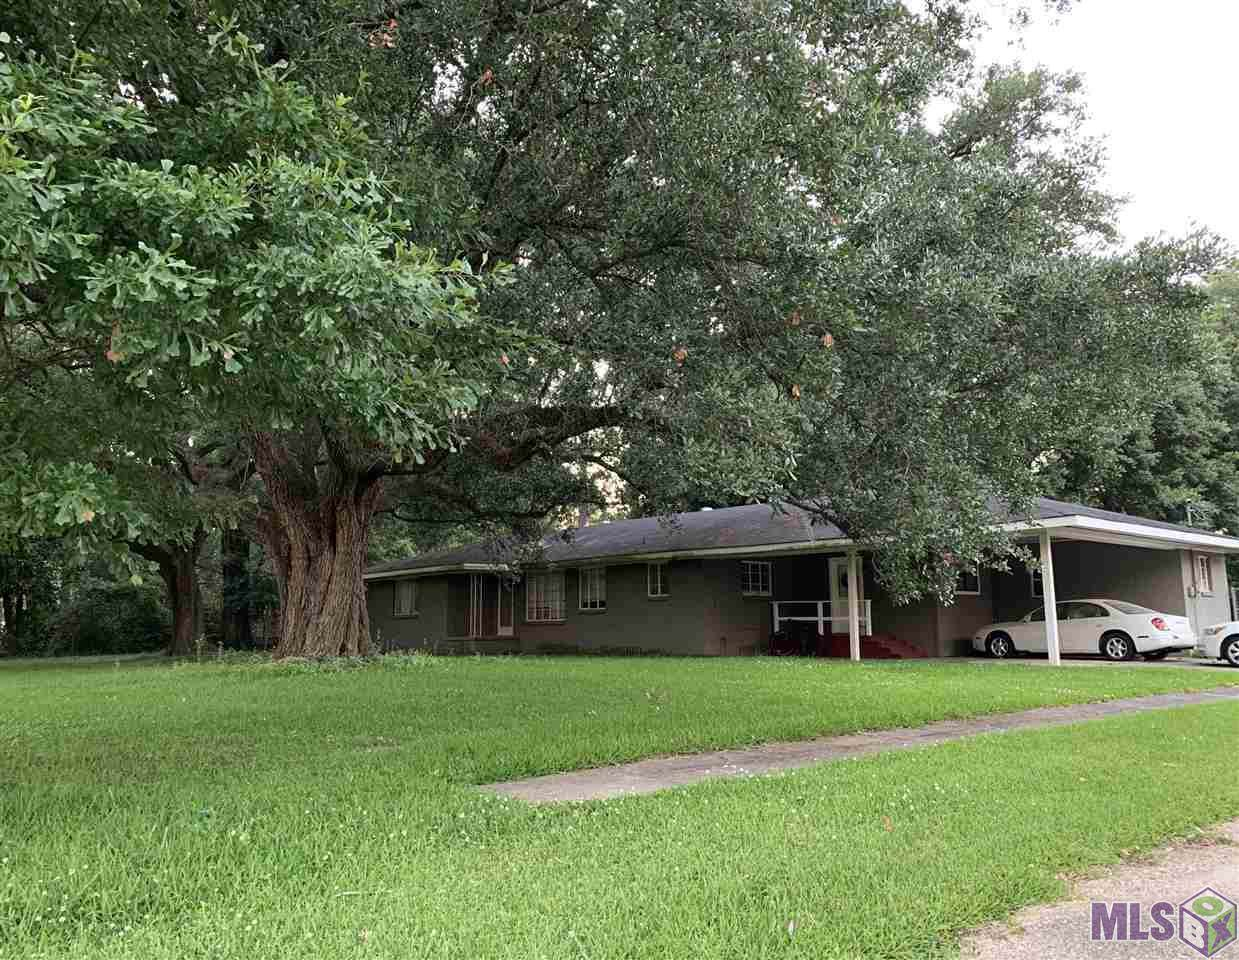 8779 Hill Dr - Photo 1